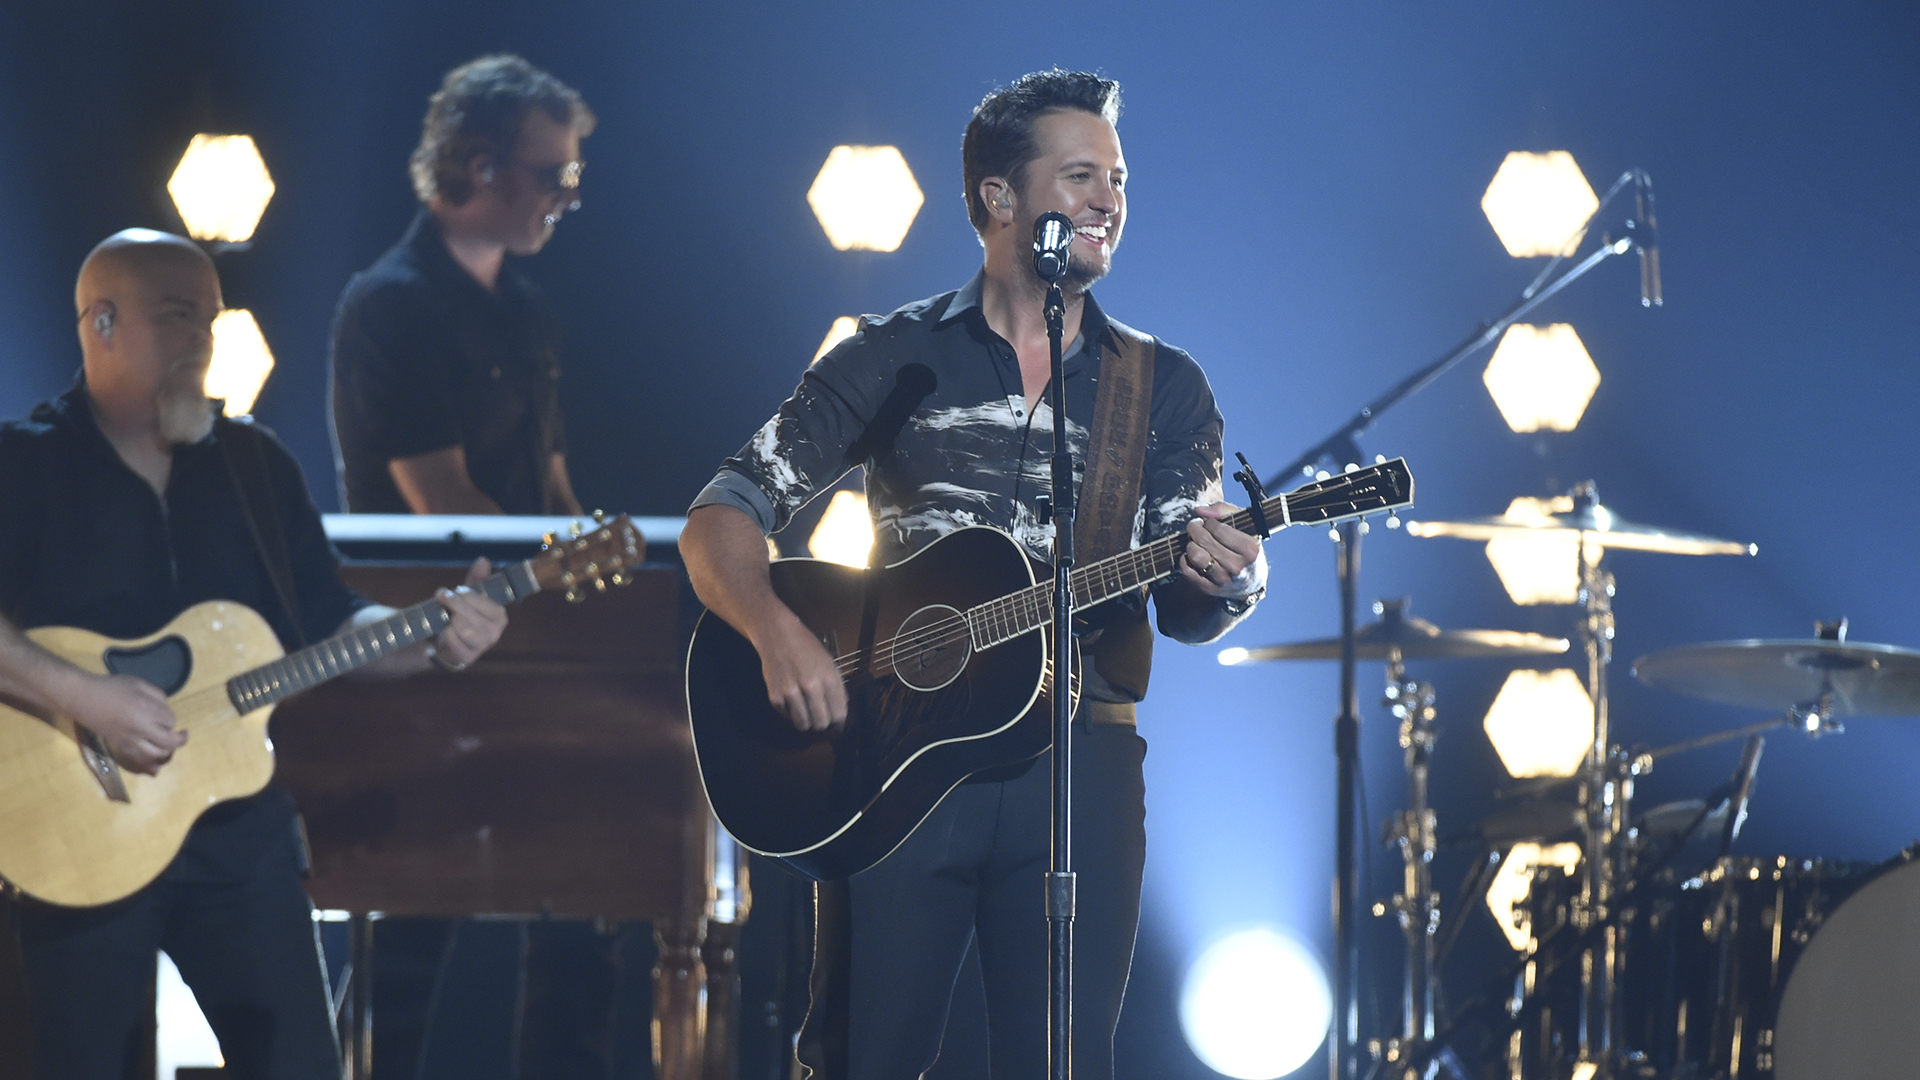 Luke Bryan plays his 20th number one single,